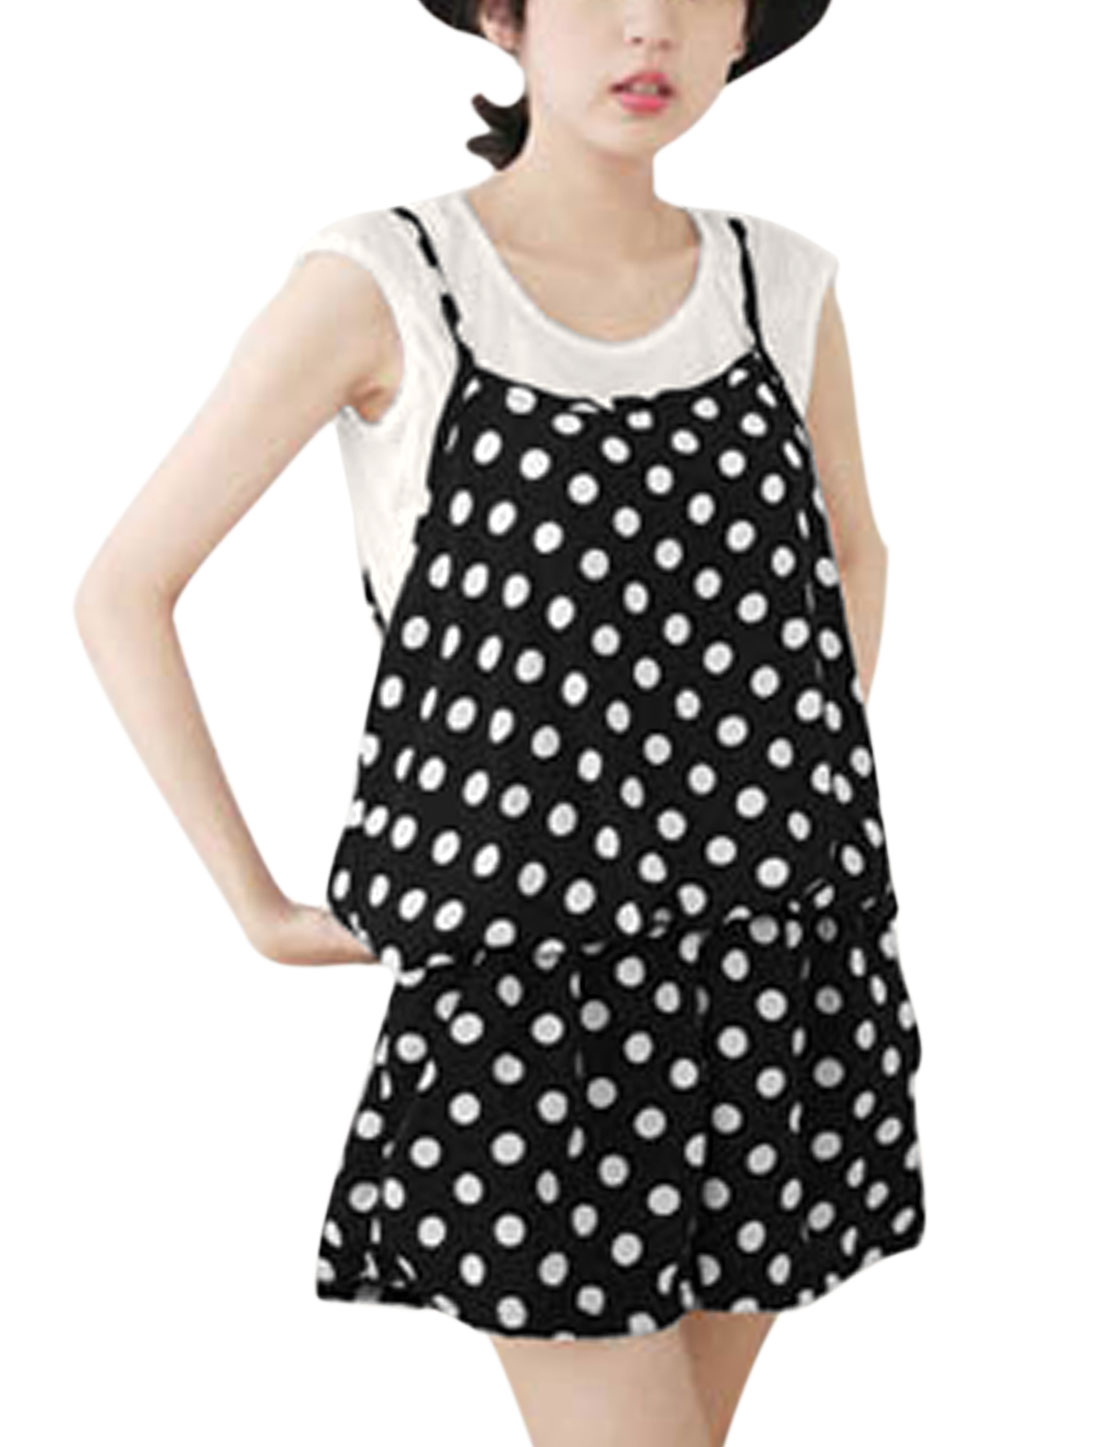 Ladies Round Neck White Cropped Top w Dots Casual Romper Black S